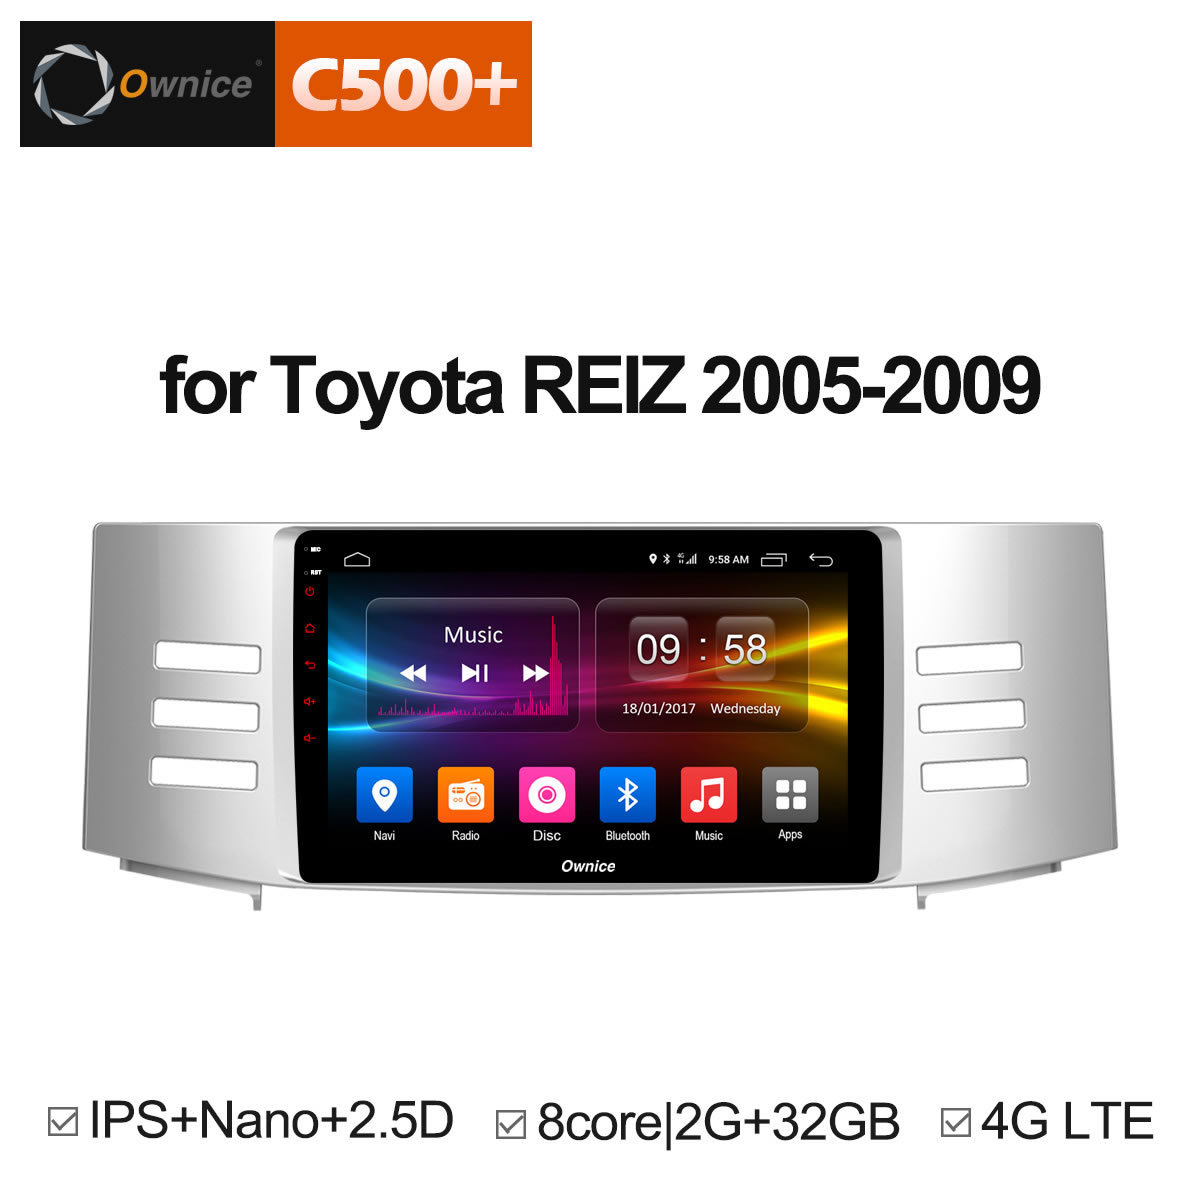 Ownice C500+ G10 9 Octa 8 Core Android 8.1 car radio player GPS Navi for Toyota Reiz Mark X 2005 2006 2007 2008 2009 DVD 4G LTE ownice c500 4g sim lte octa 8 core android 6 0 for kia ceed 2013 2015 car dvd player gps navi radio wifi 4g bt 2gb ram 32g rom